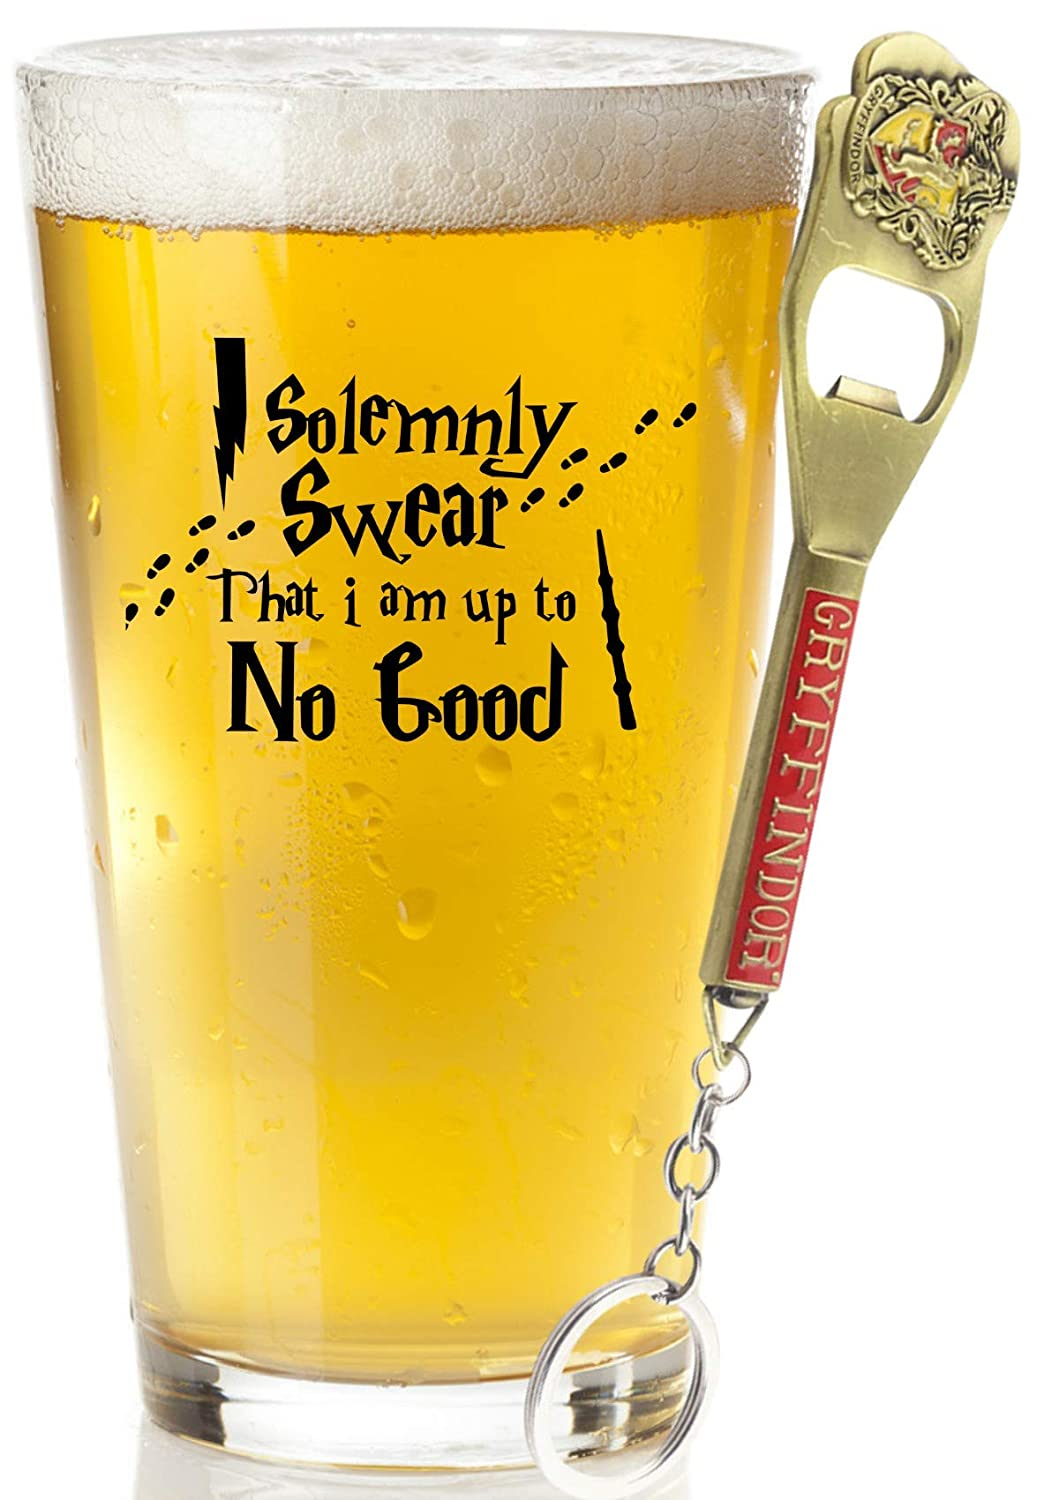 I Solemnly Swear That I Am Up To No Good Beer Glass With FREE Bottle Opener - Movie Merchandise - Harry Mischief Managed Magic Mug Collection - Potter Gifts And Stuff For Women and Men